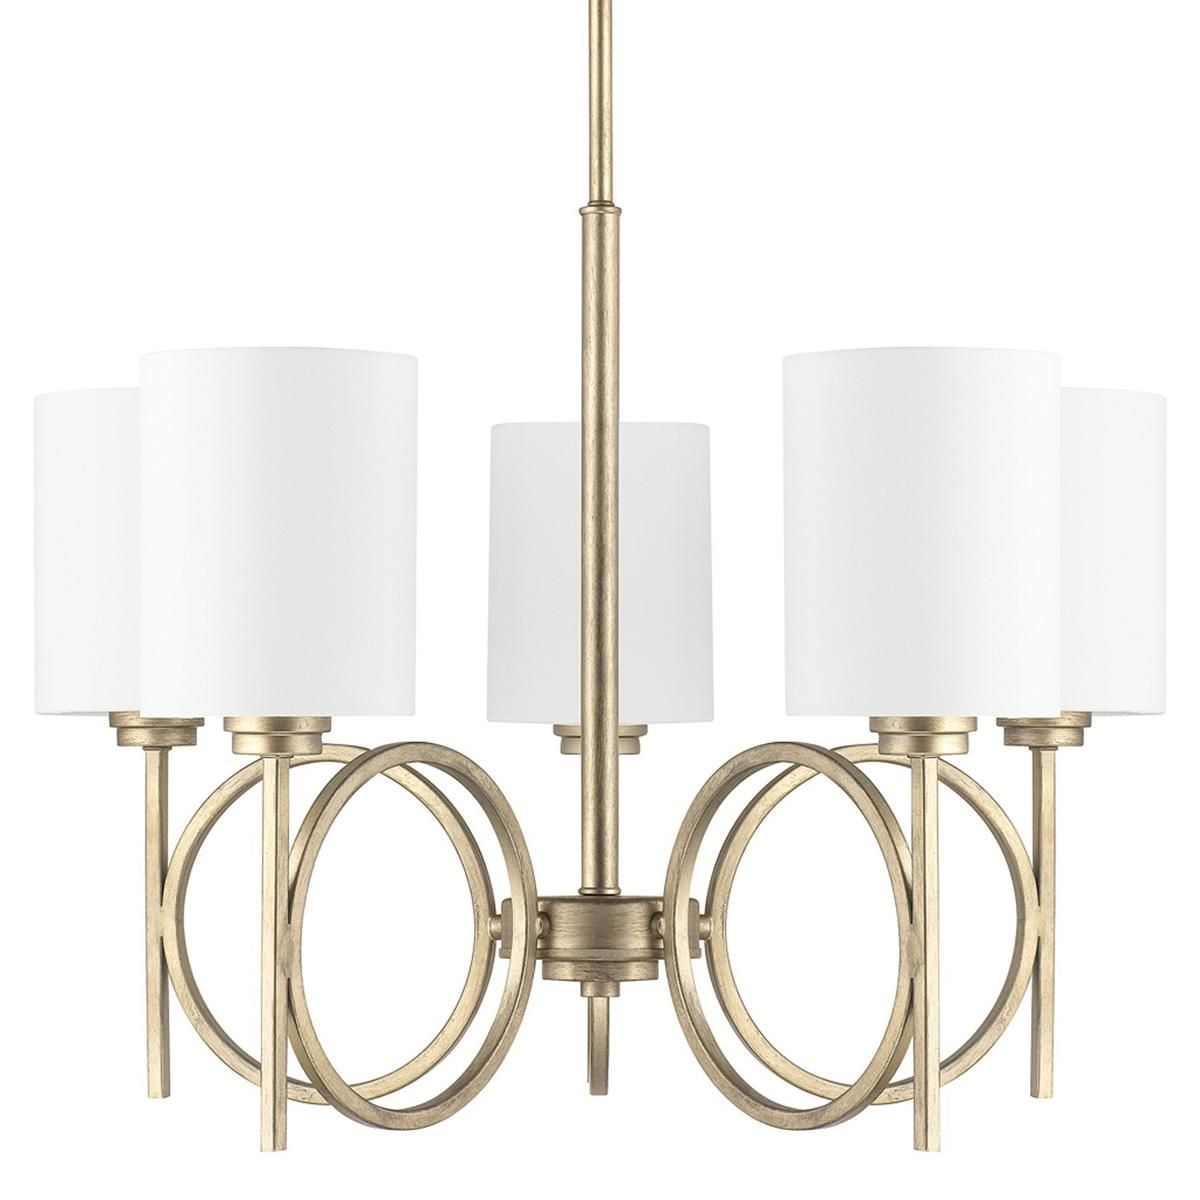 Transitional circles chandelier 5 light 319 bronze finish for decorative accent pillows throws shades of light arubaitofo Gallery